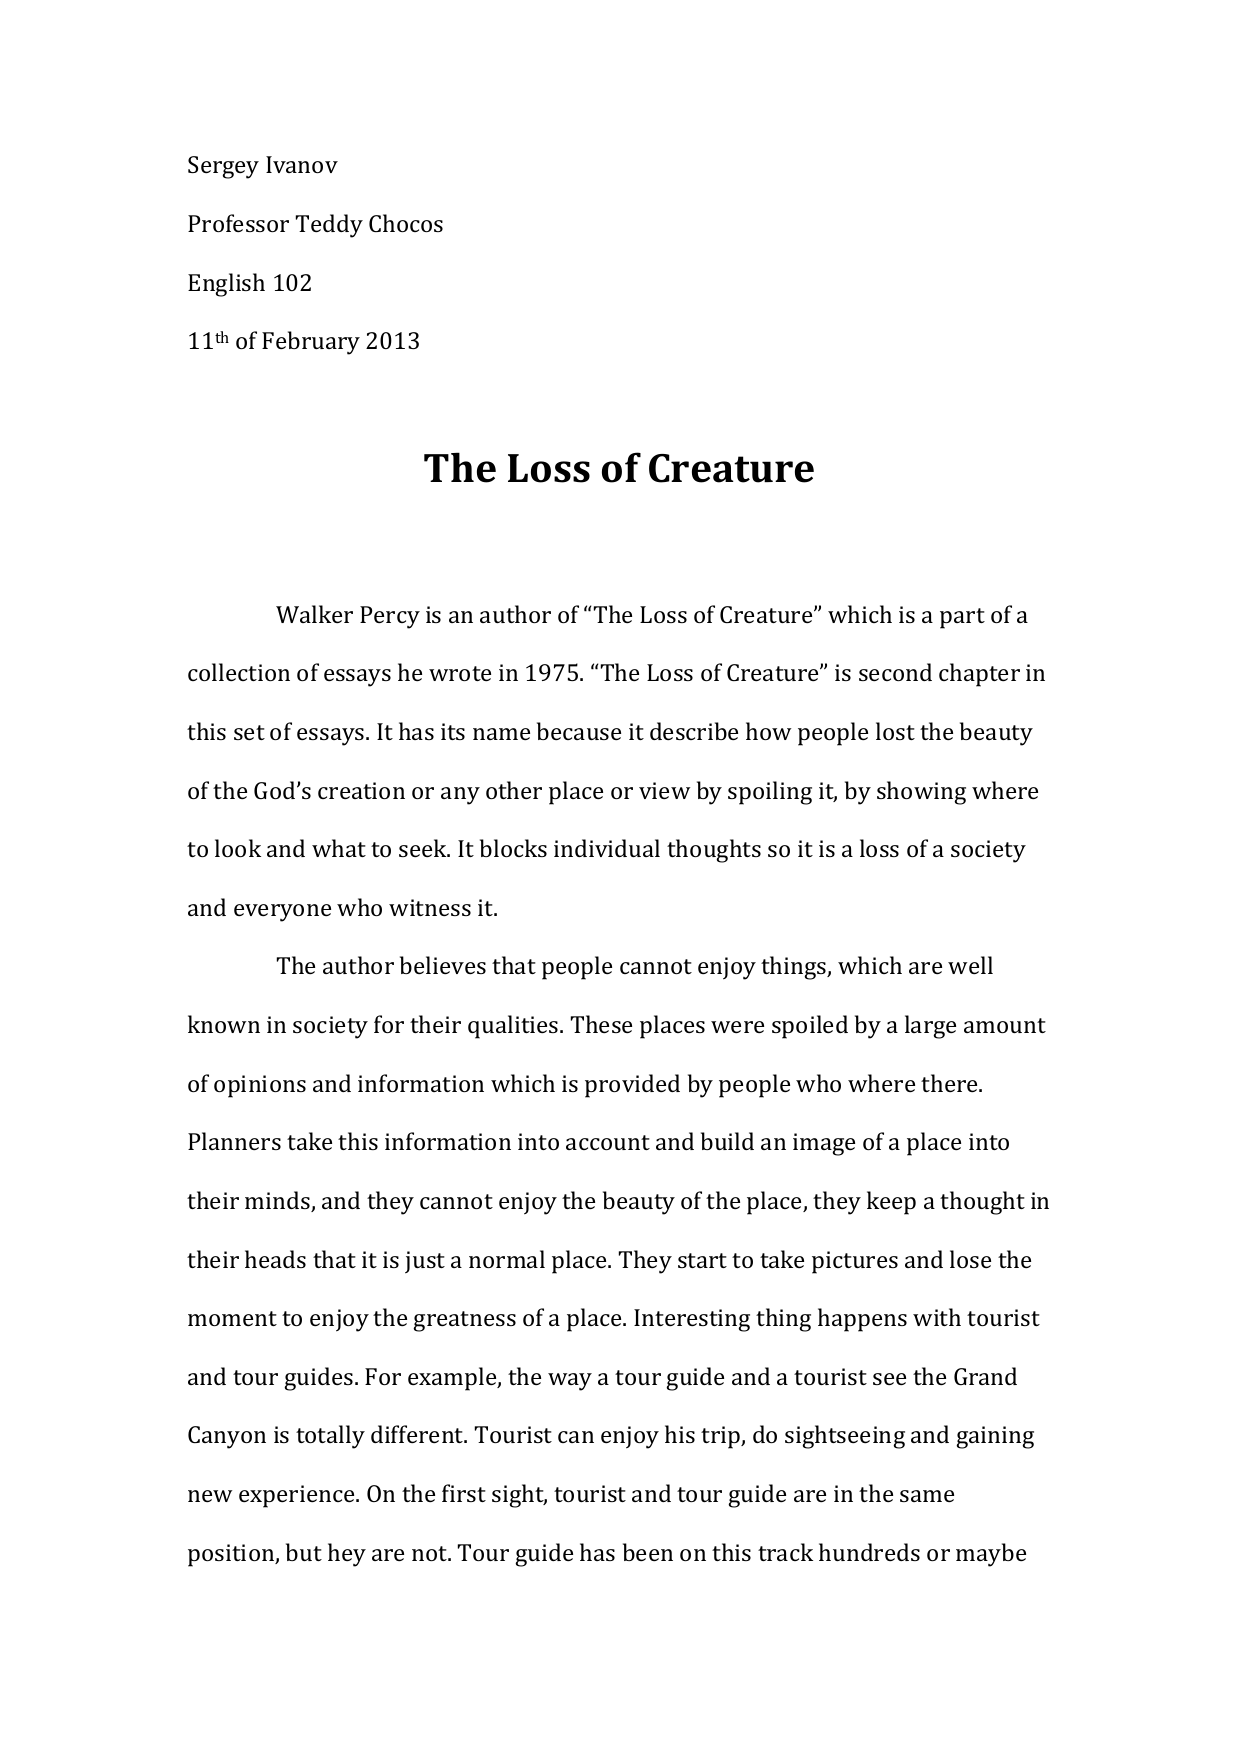 walker percys essay the loss of the creature